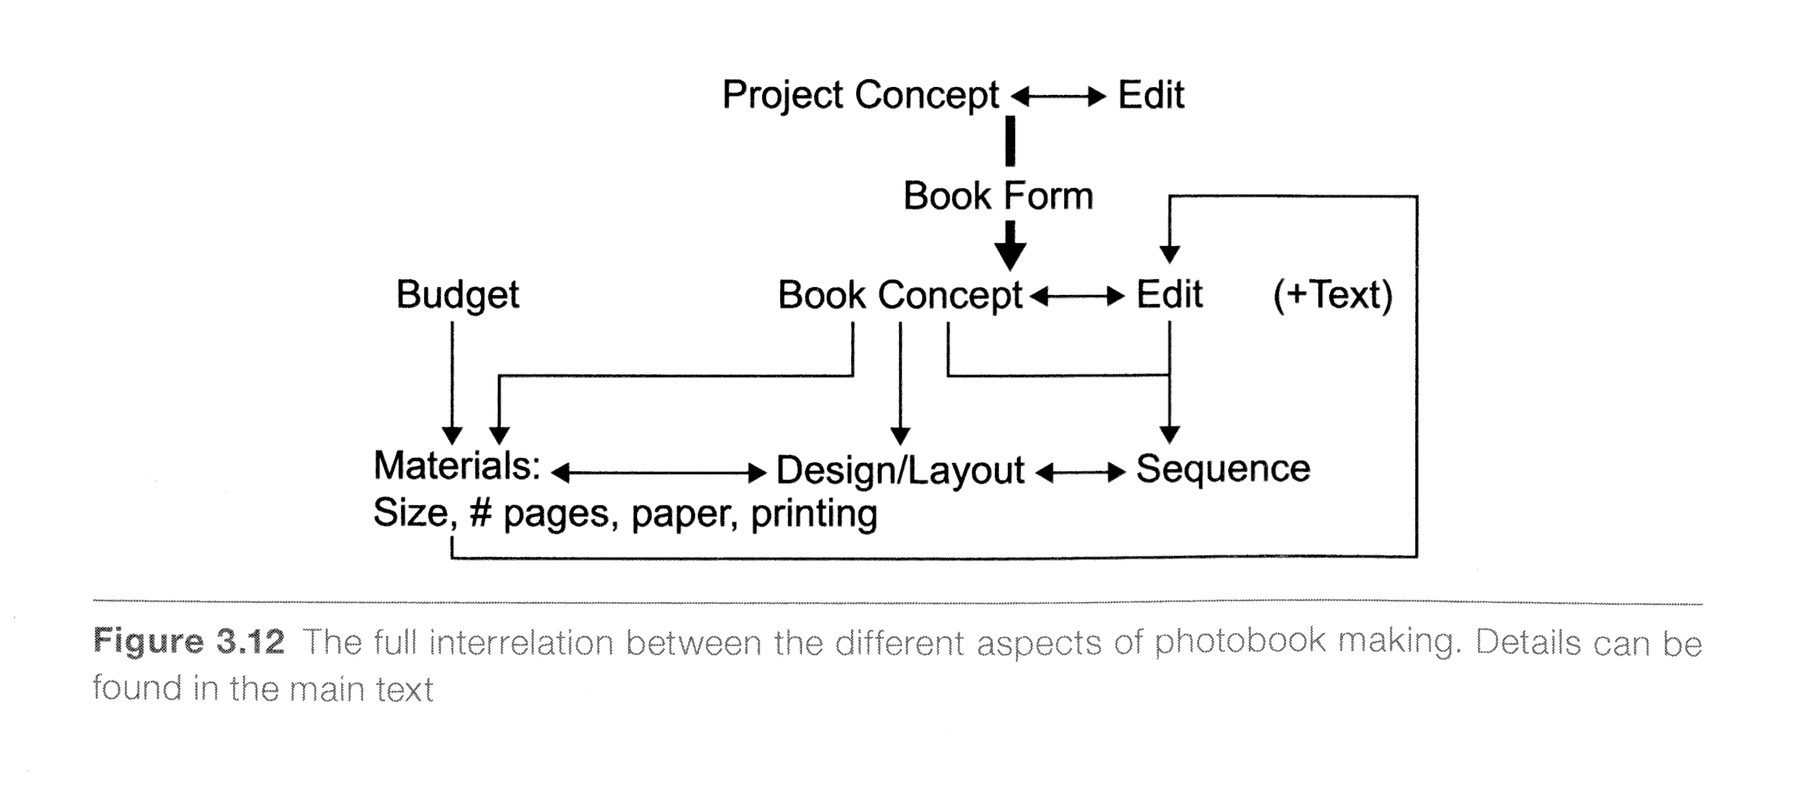 The full interrelation between the different aspects of photobook making, Jörg Colberg, 2016